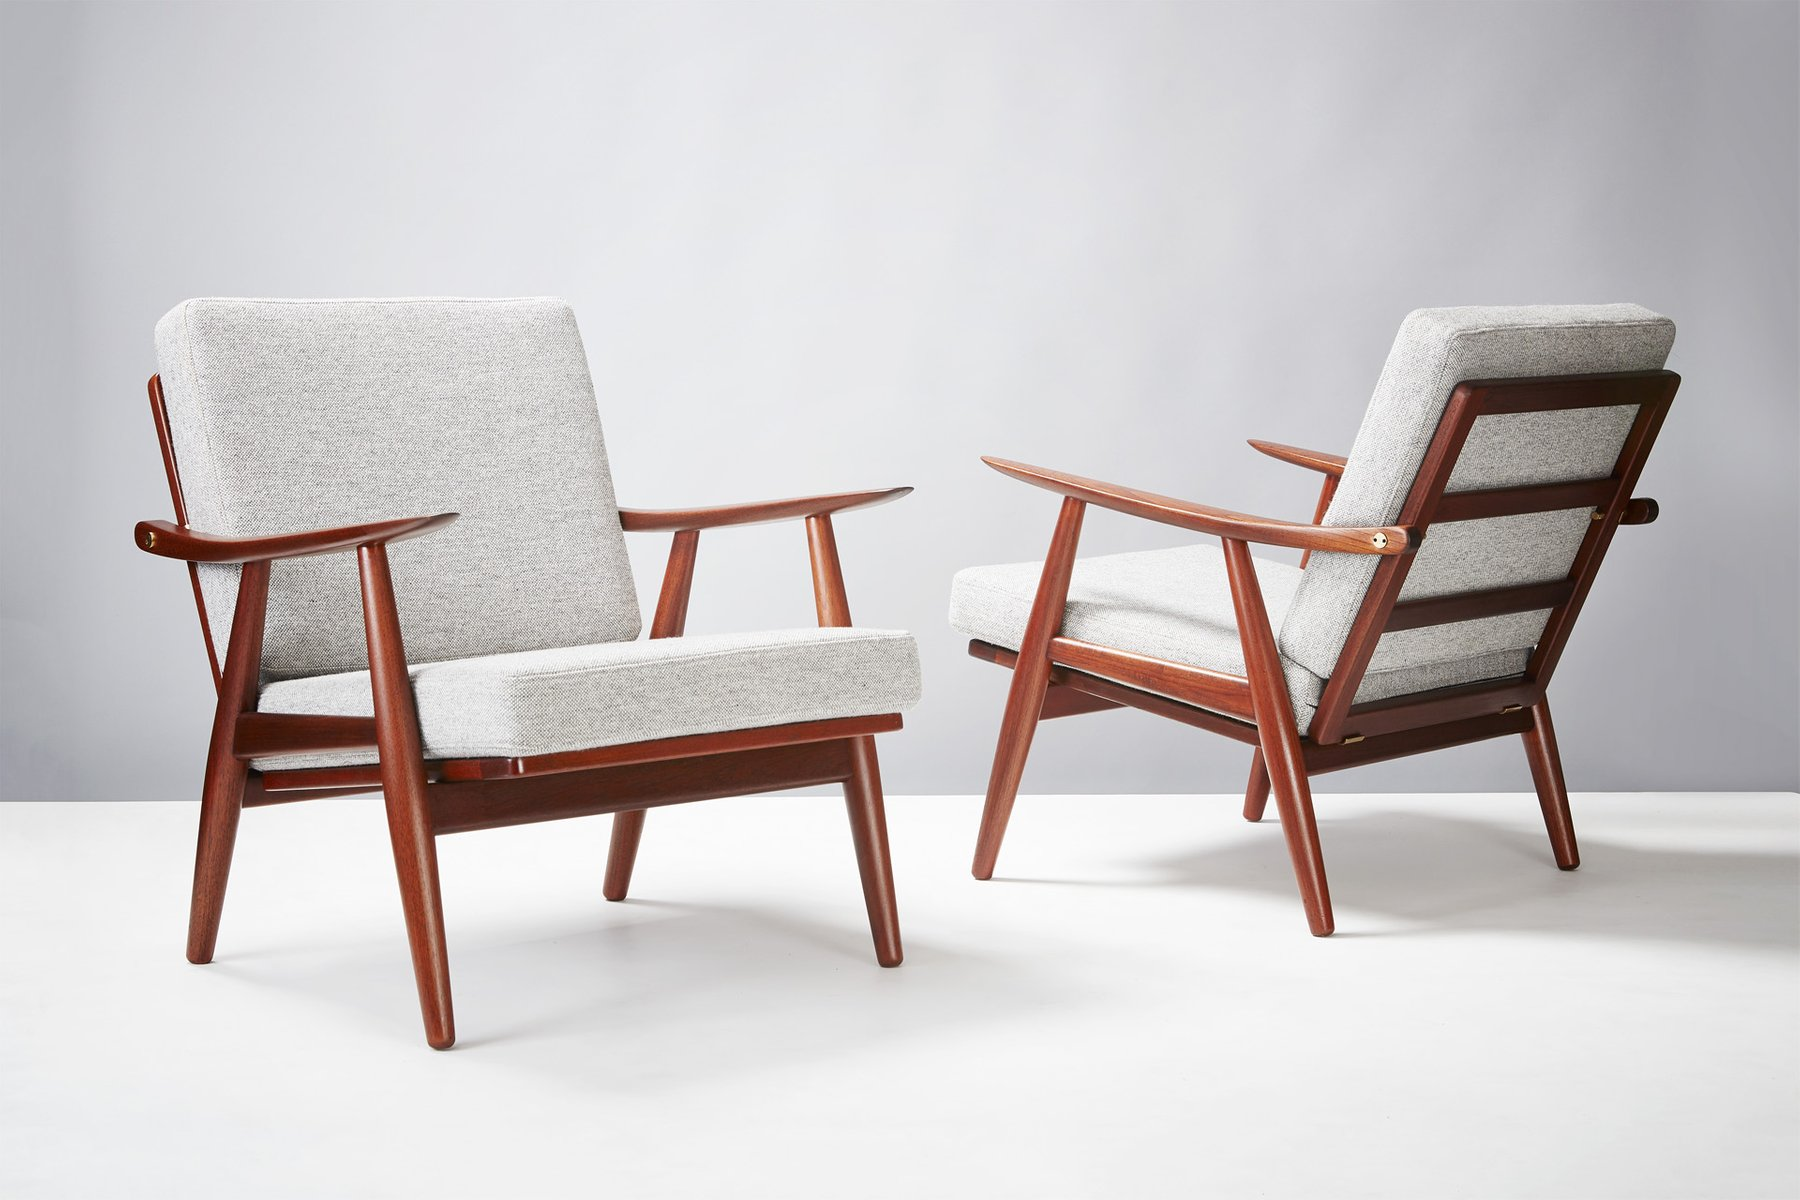 Attractive GE 270 Chairs By Hans Wegner For Getama, 1956